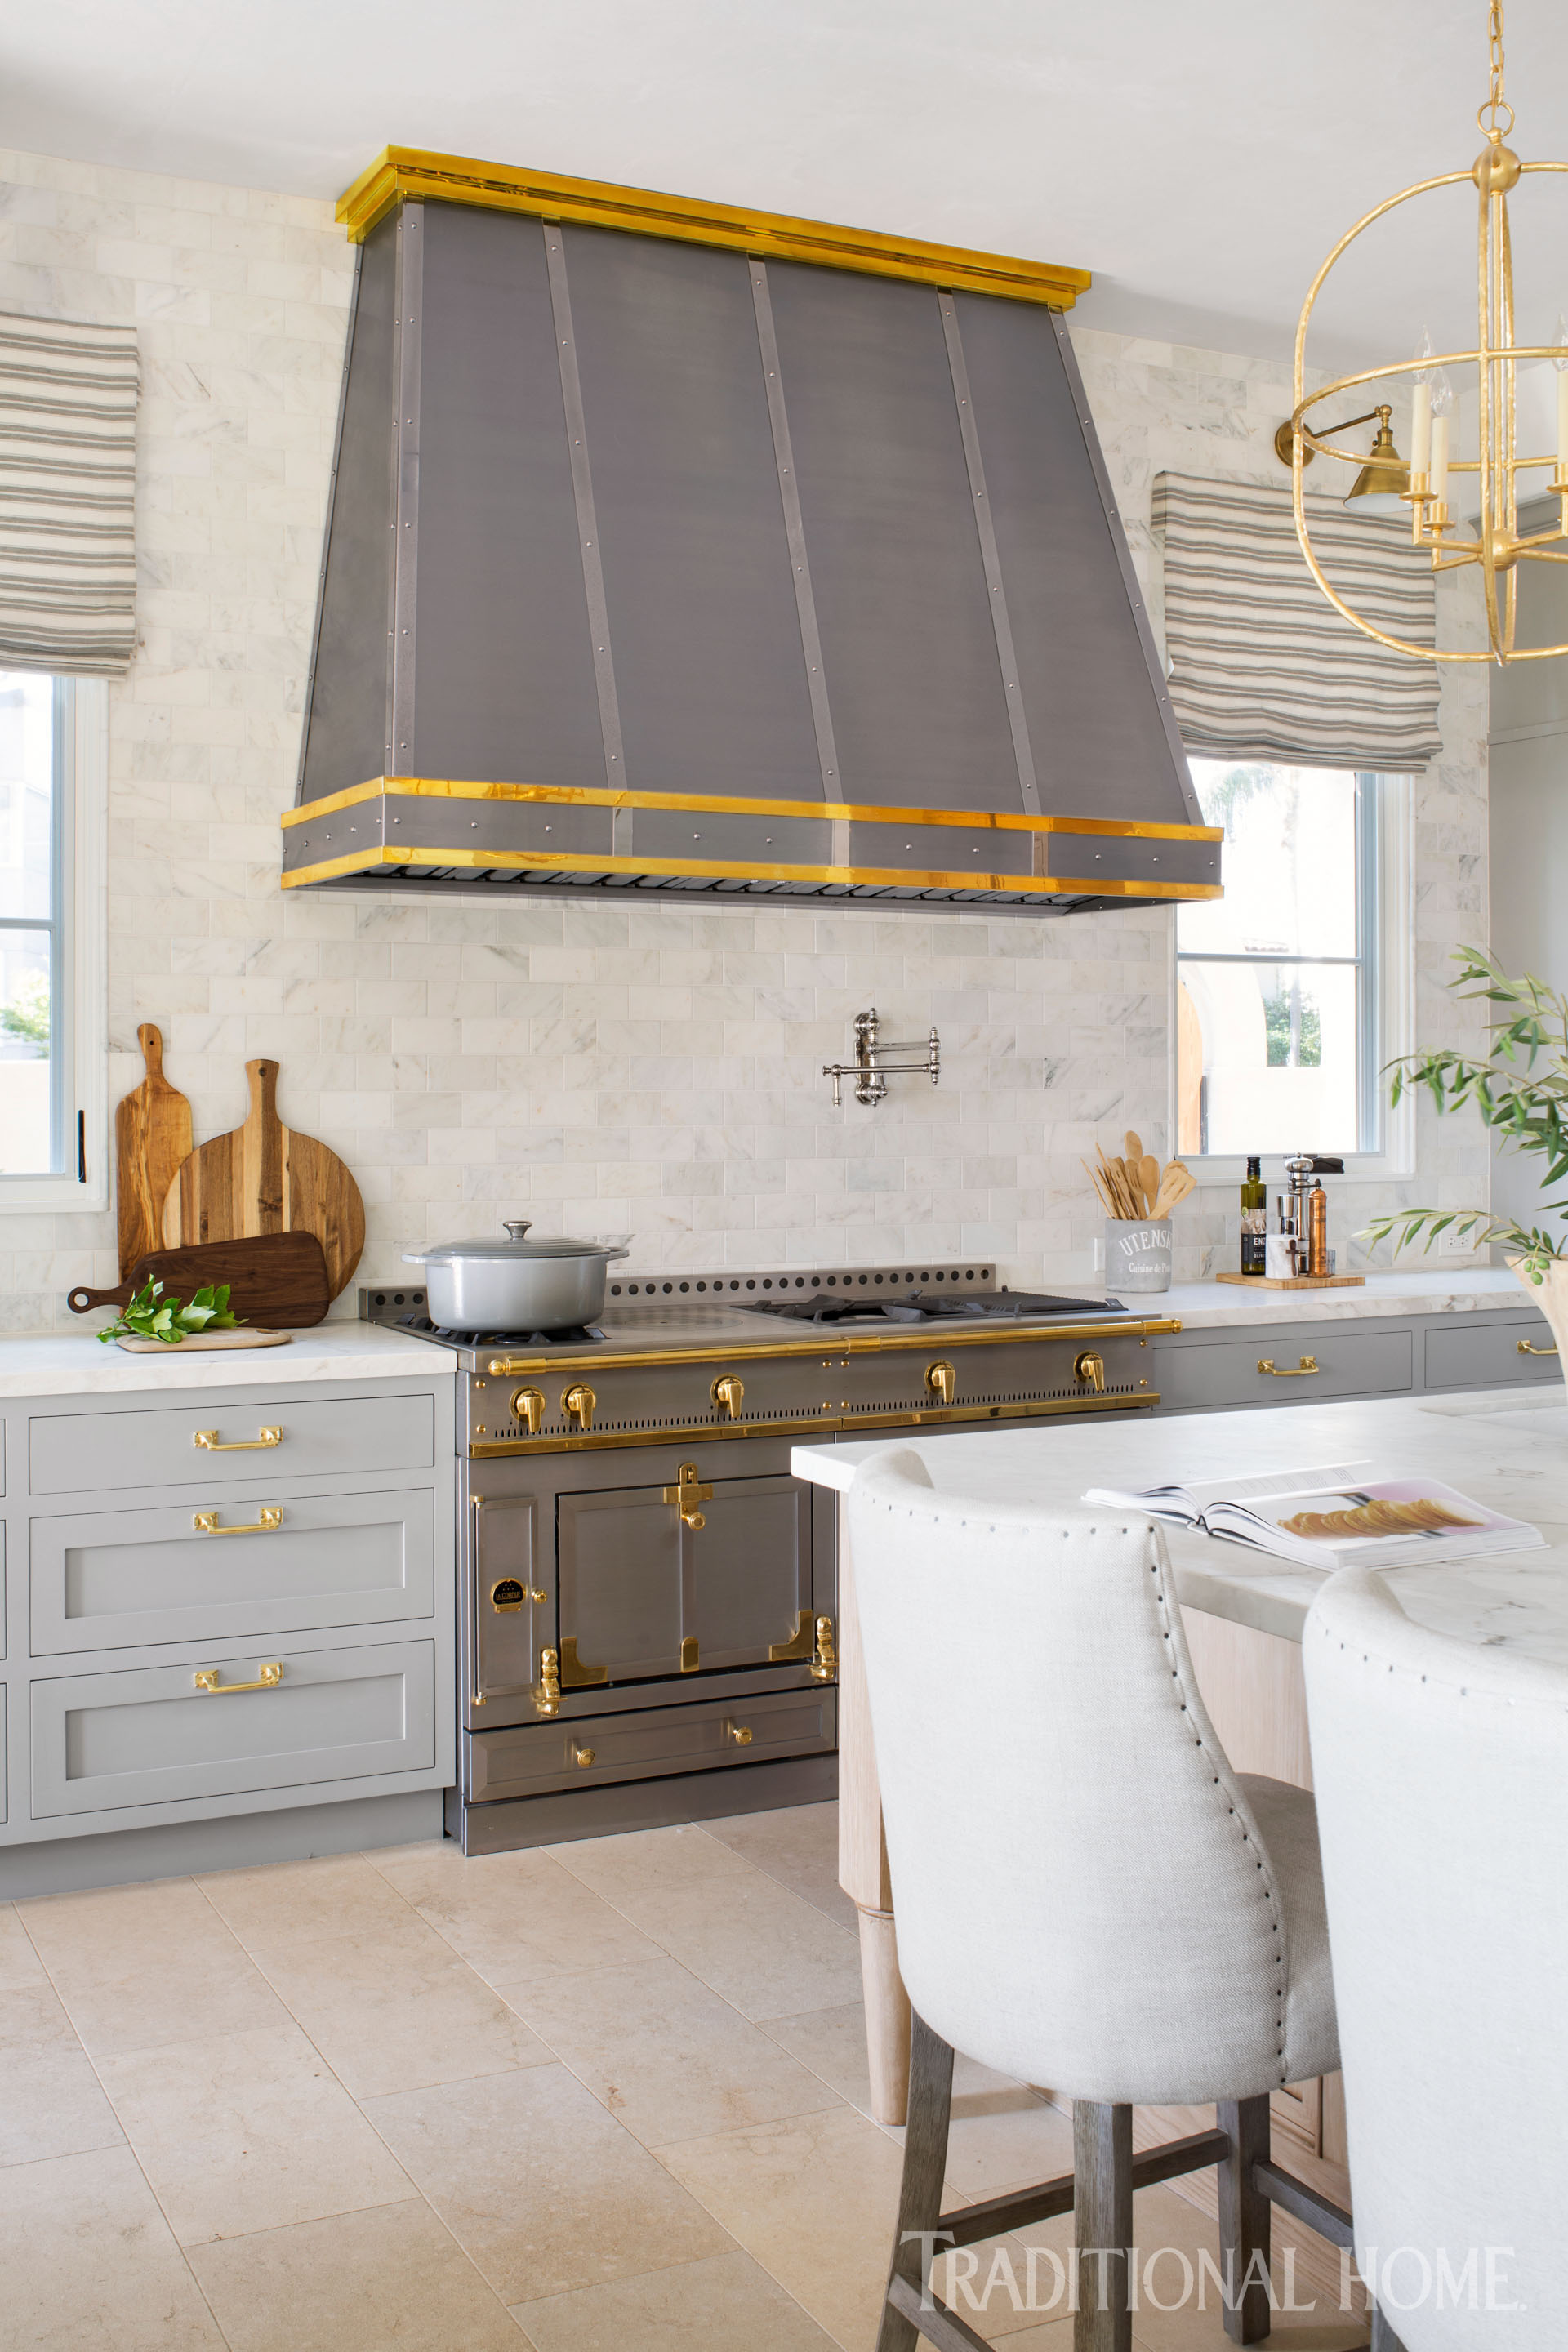 French Style Inspires a Modern Kitchen | Traditional Home